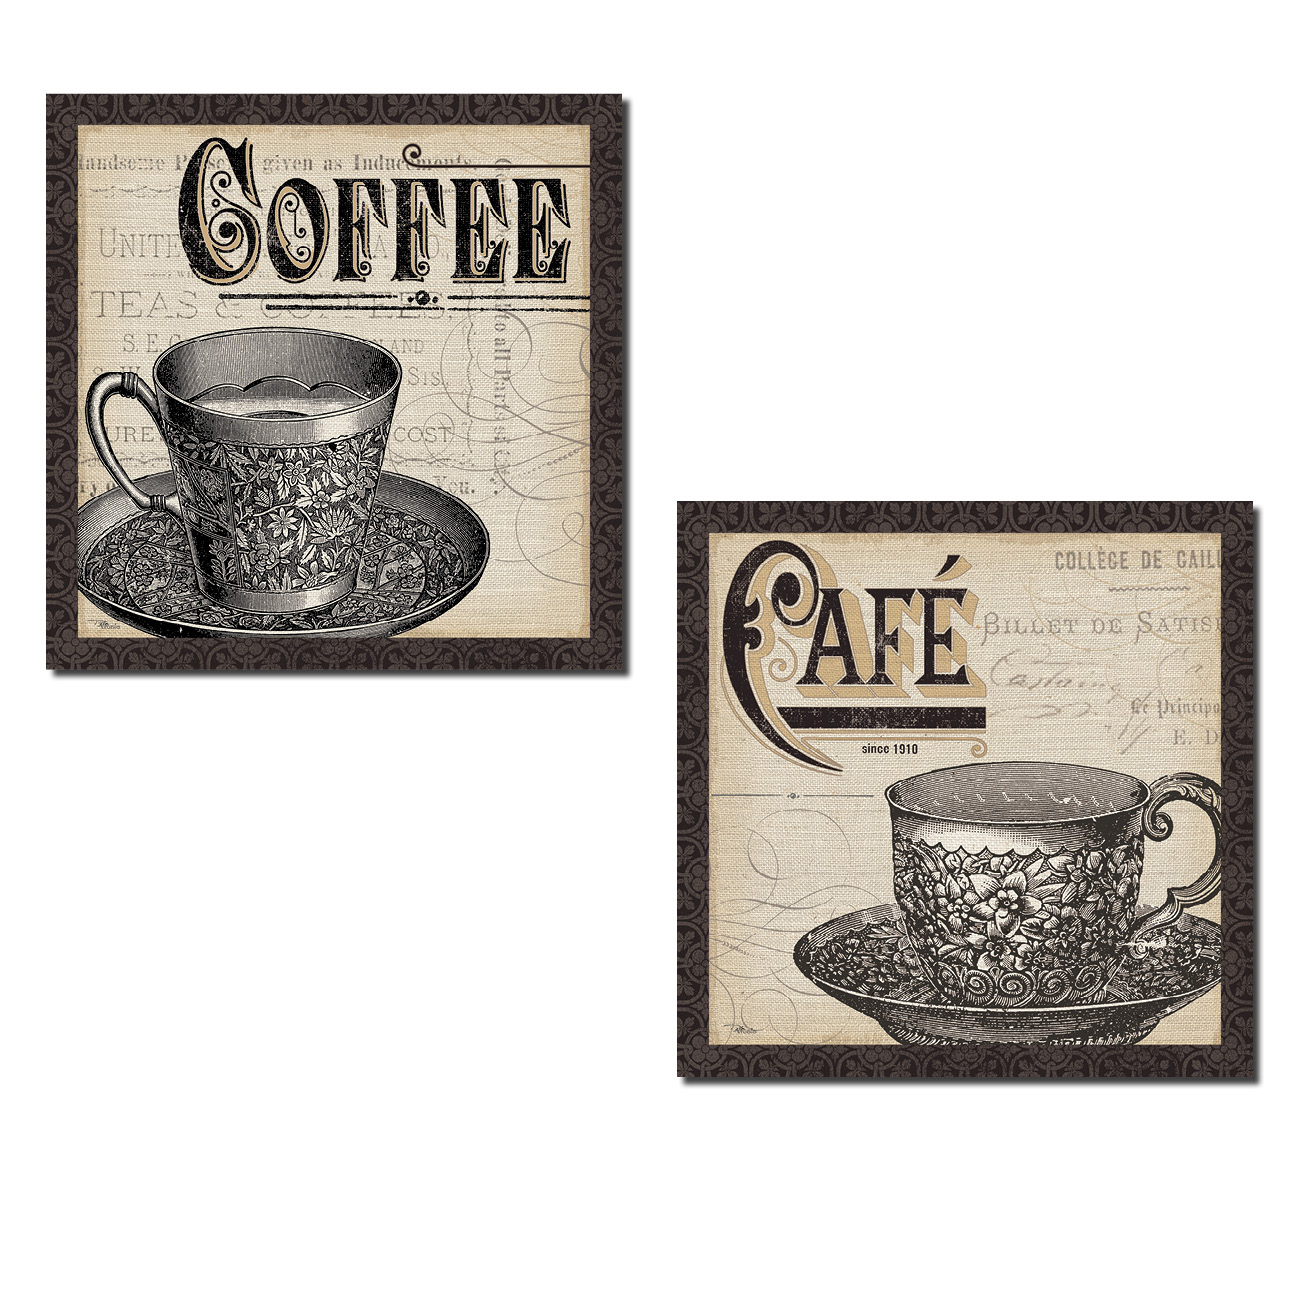 2 Vintage-Style Cafe and Coffee Cups with a Script Background by Pela Studio; Kitchen Decor; Two 12x12in Paper Posters